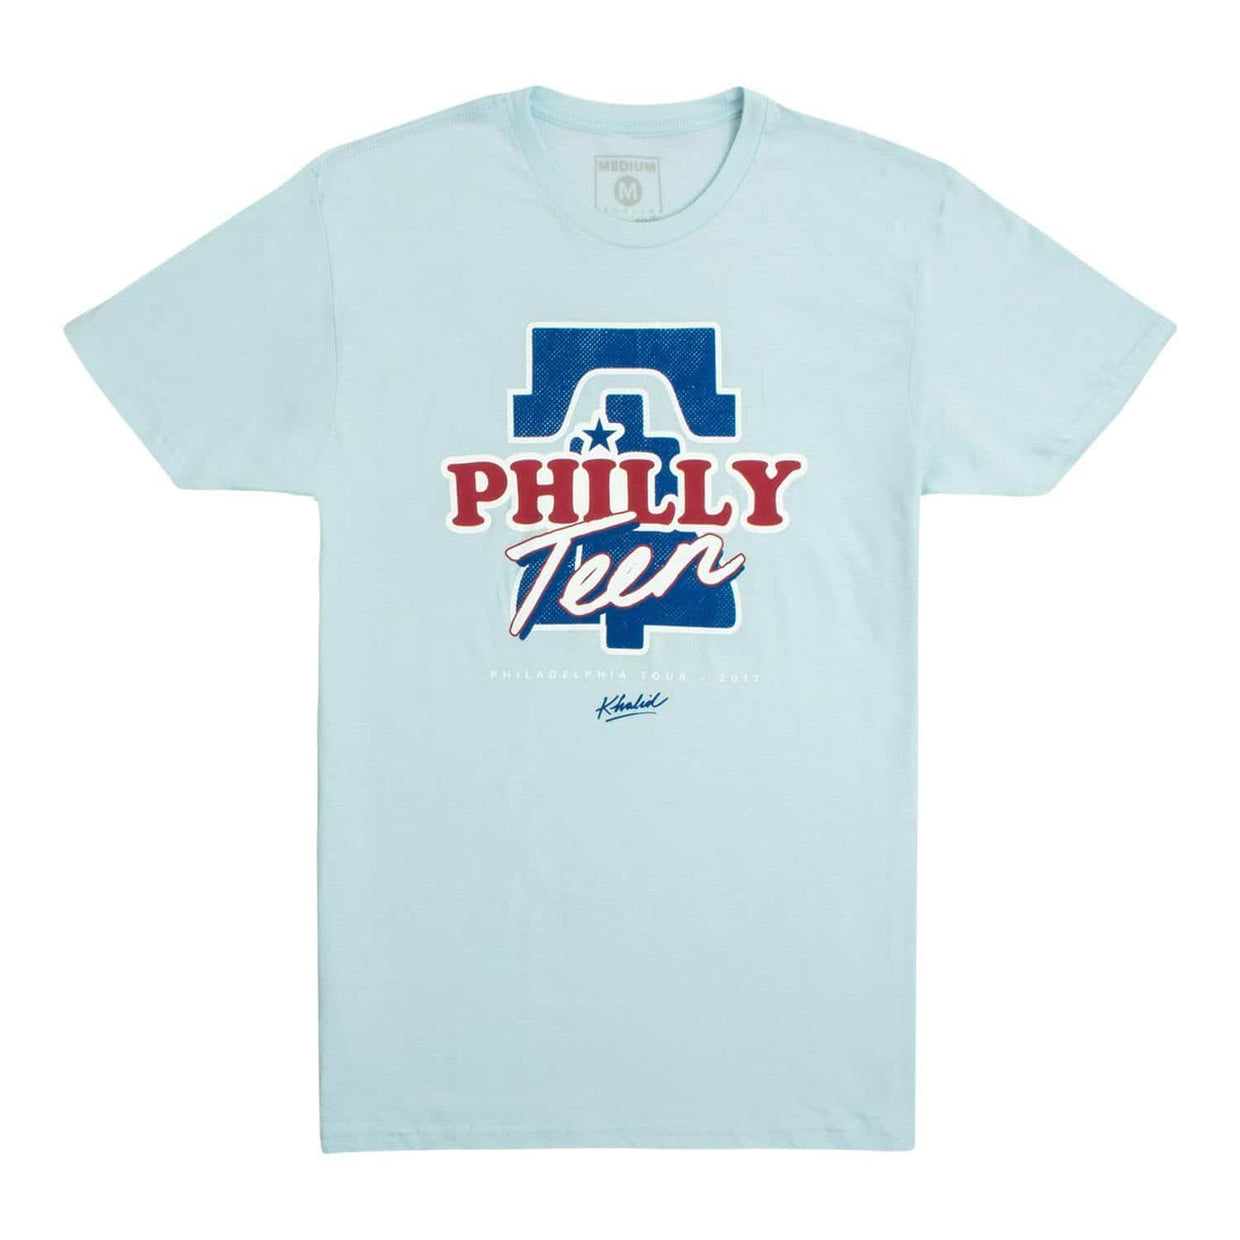 Limited Edition 'Philly Teen' Tee